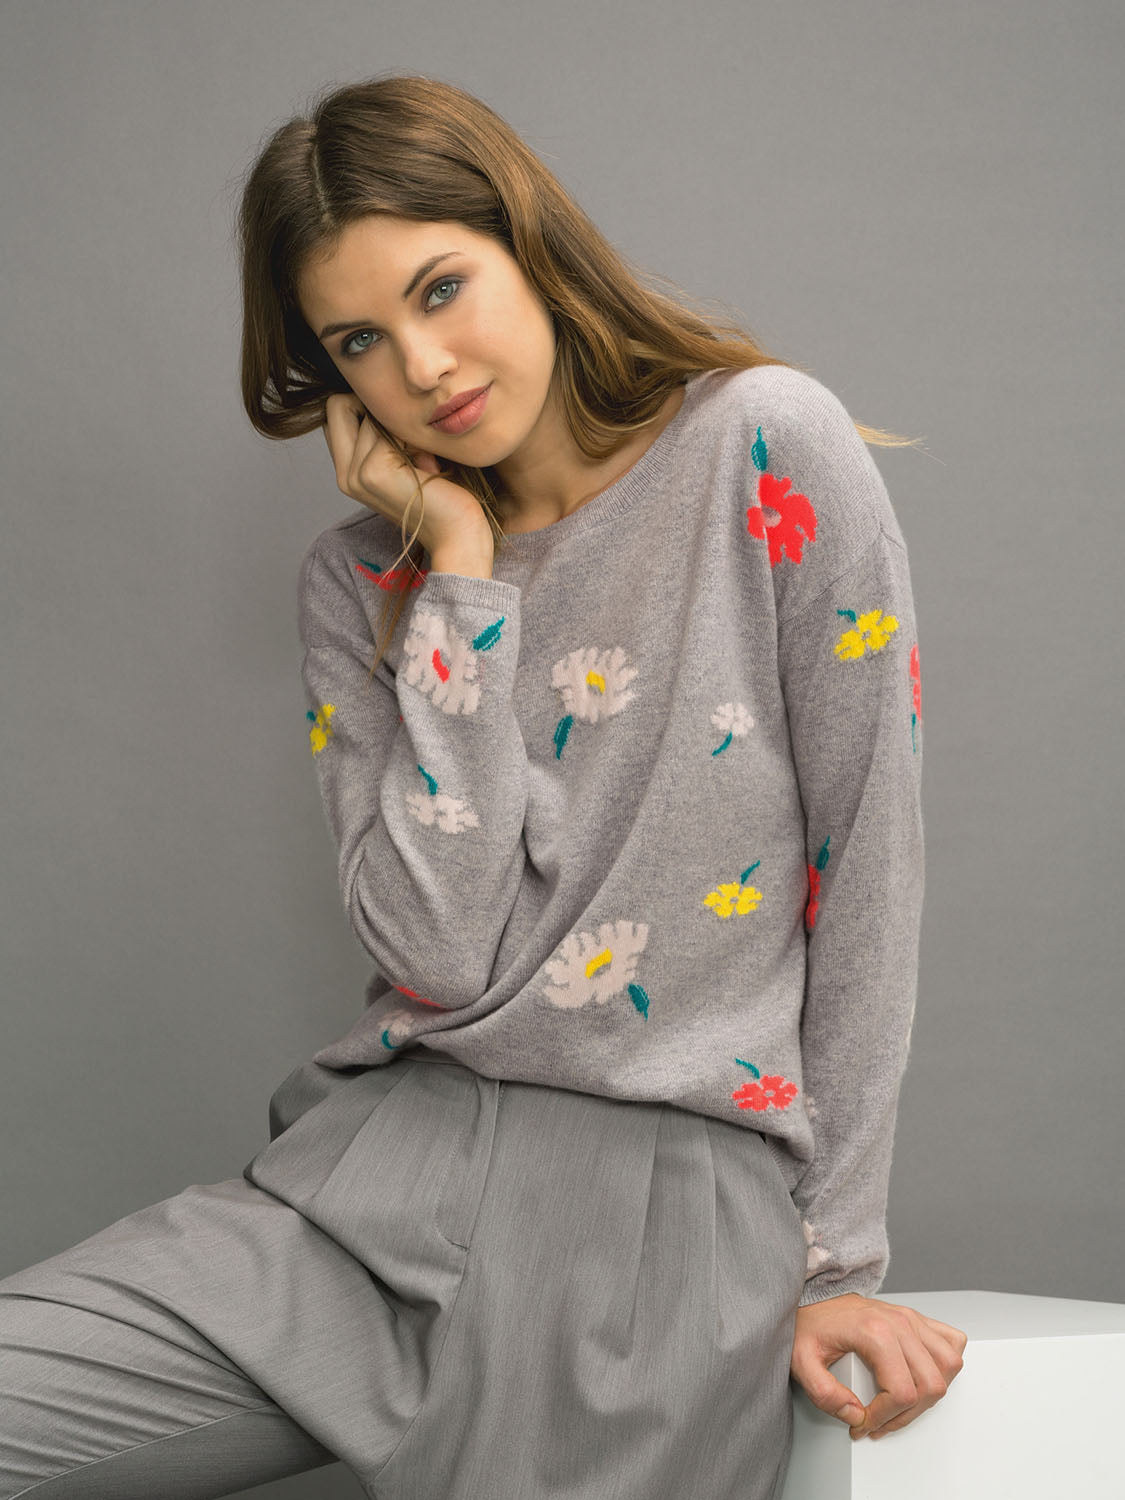 Introducing the Cocoa Cashmere AW18 – Cocoa Cashmere London